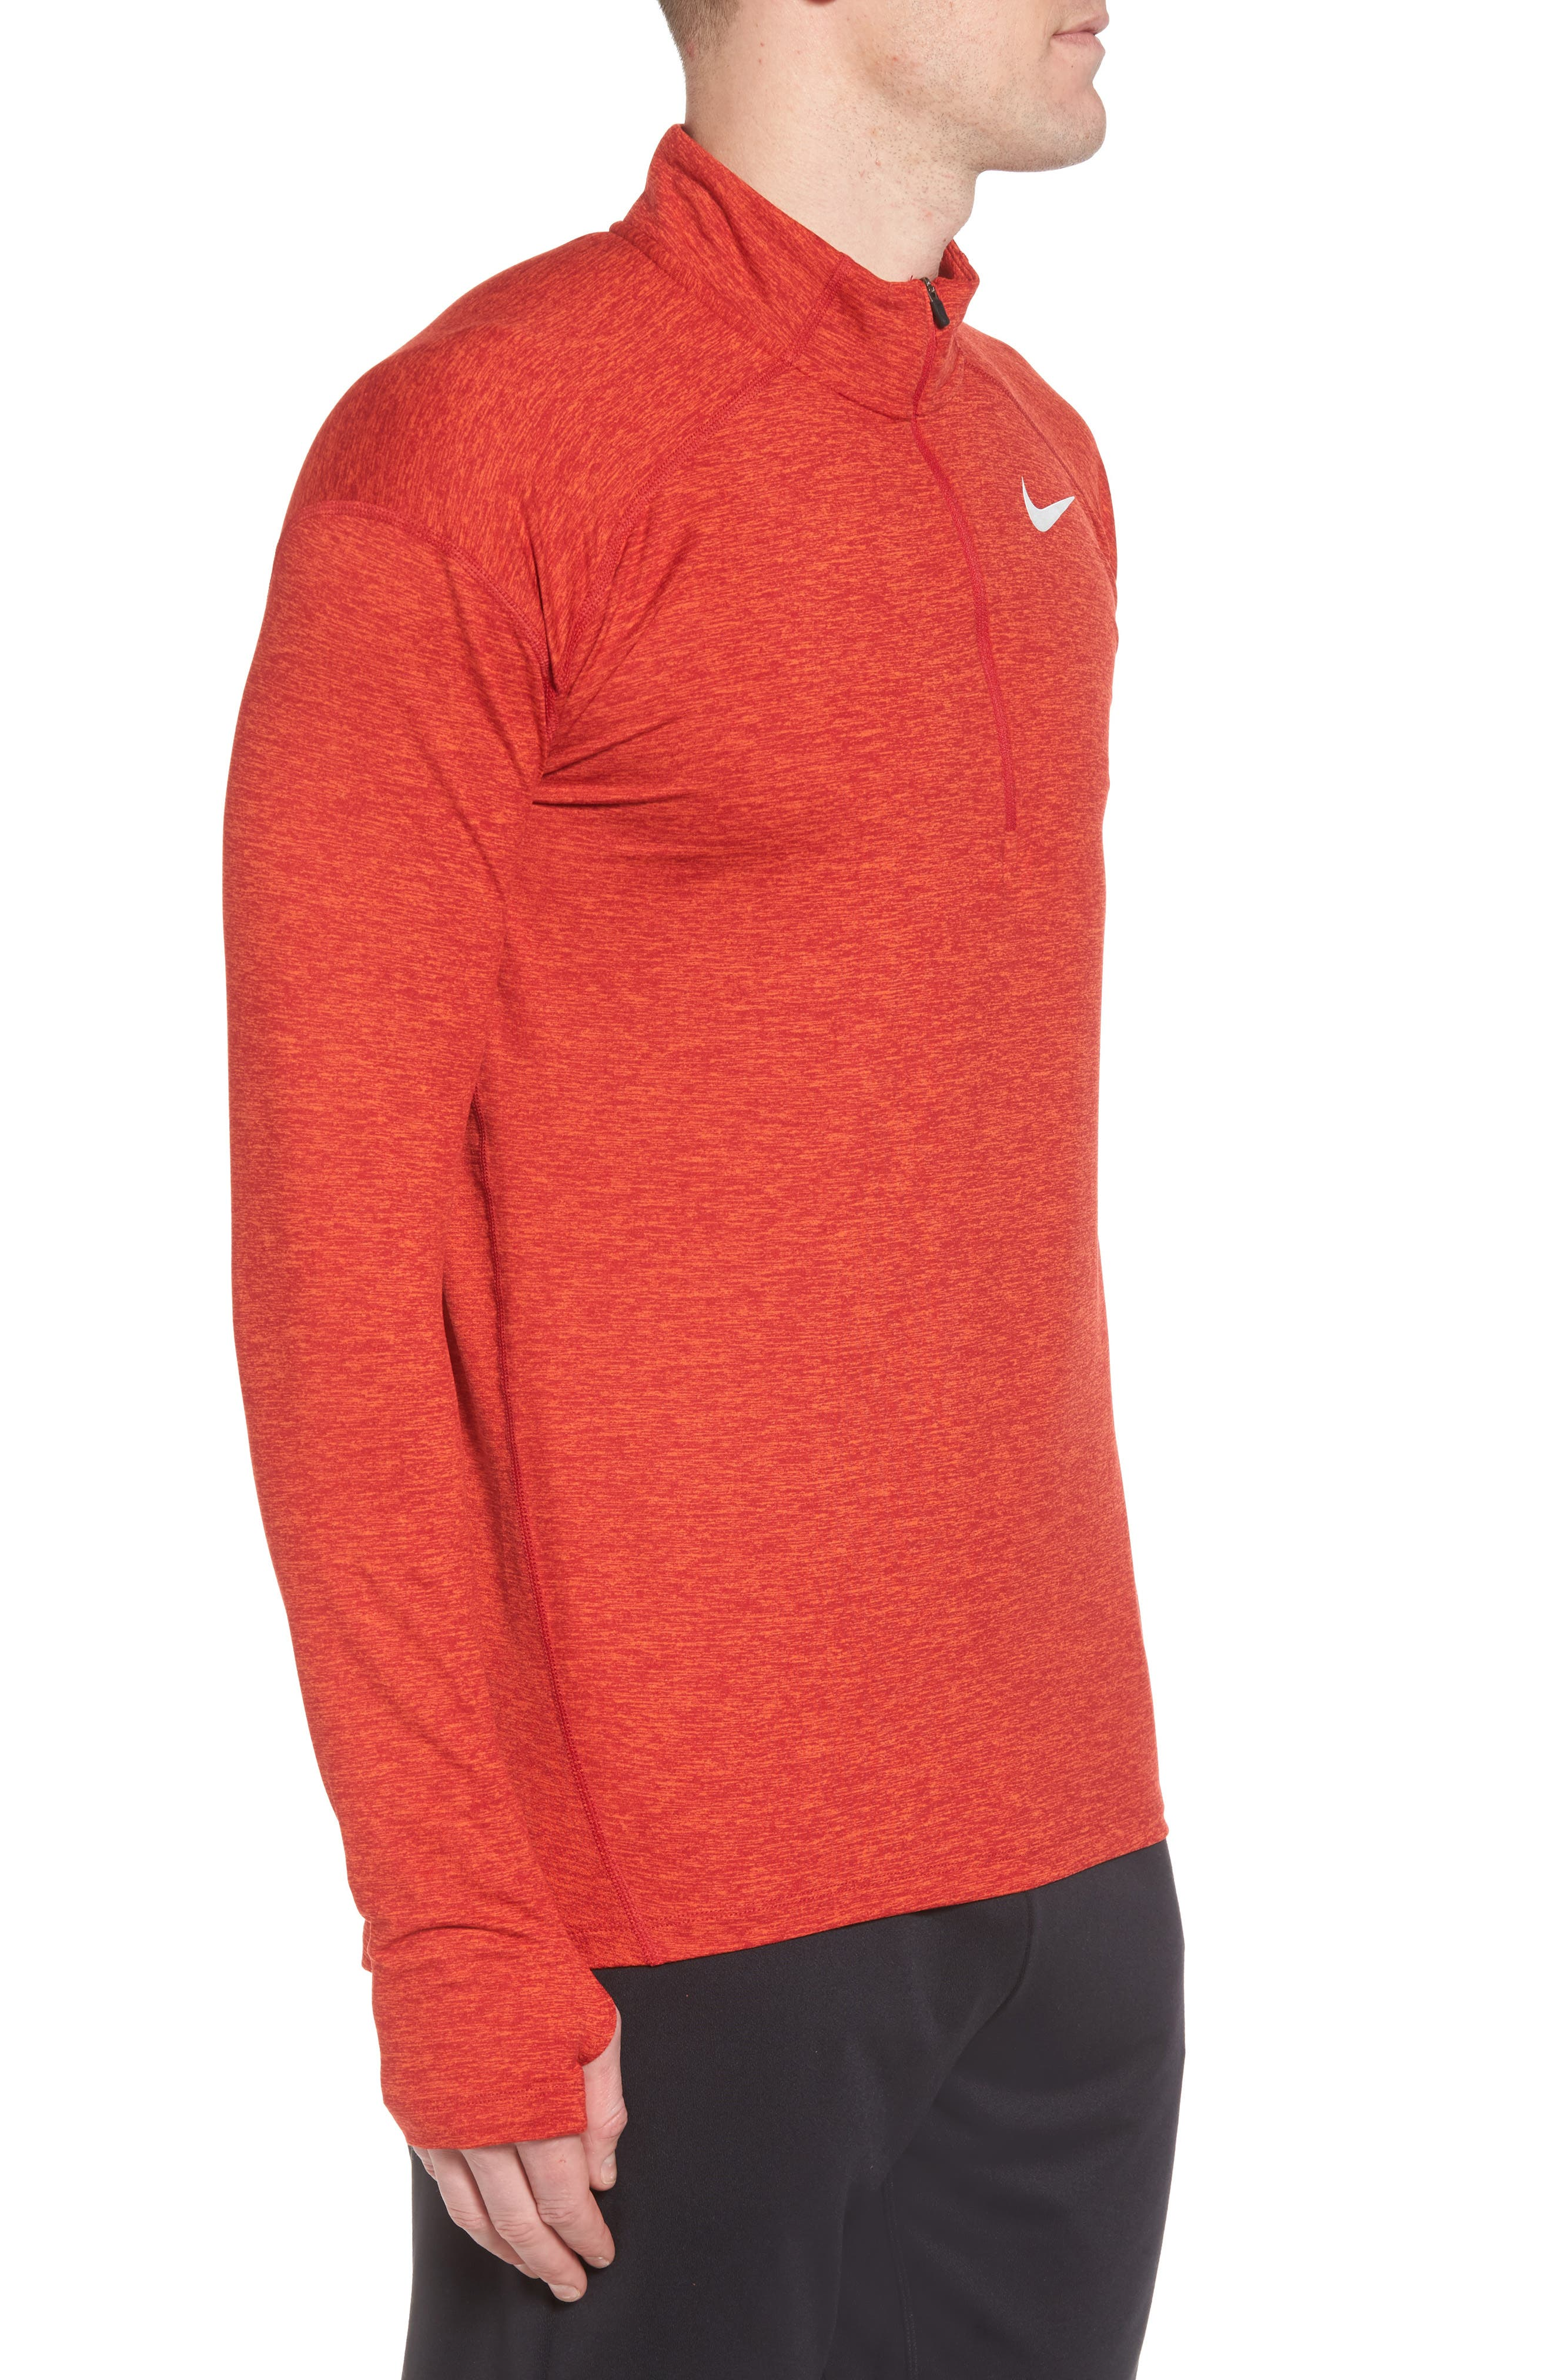 Dry Element Running Top,                             Alternate thumbnail 17, color,